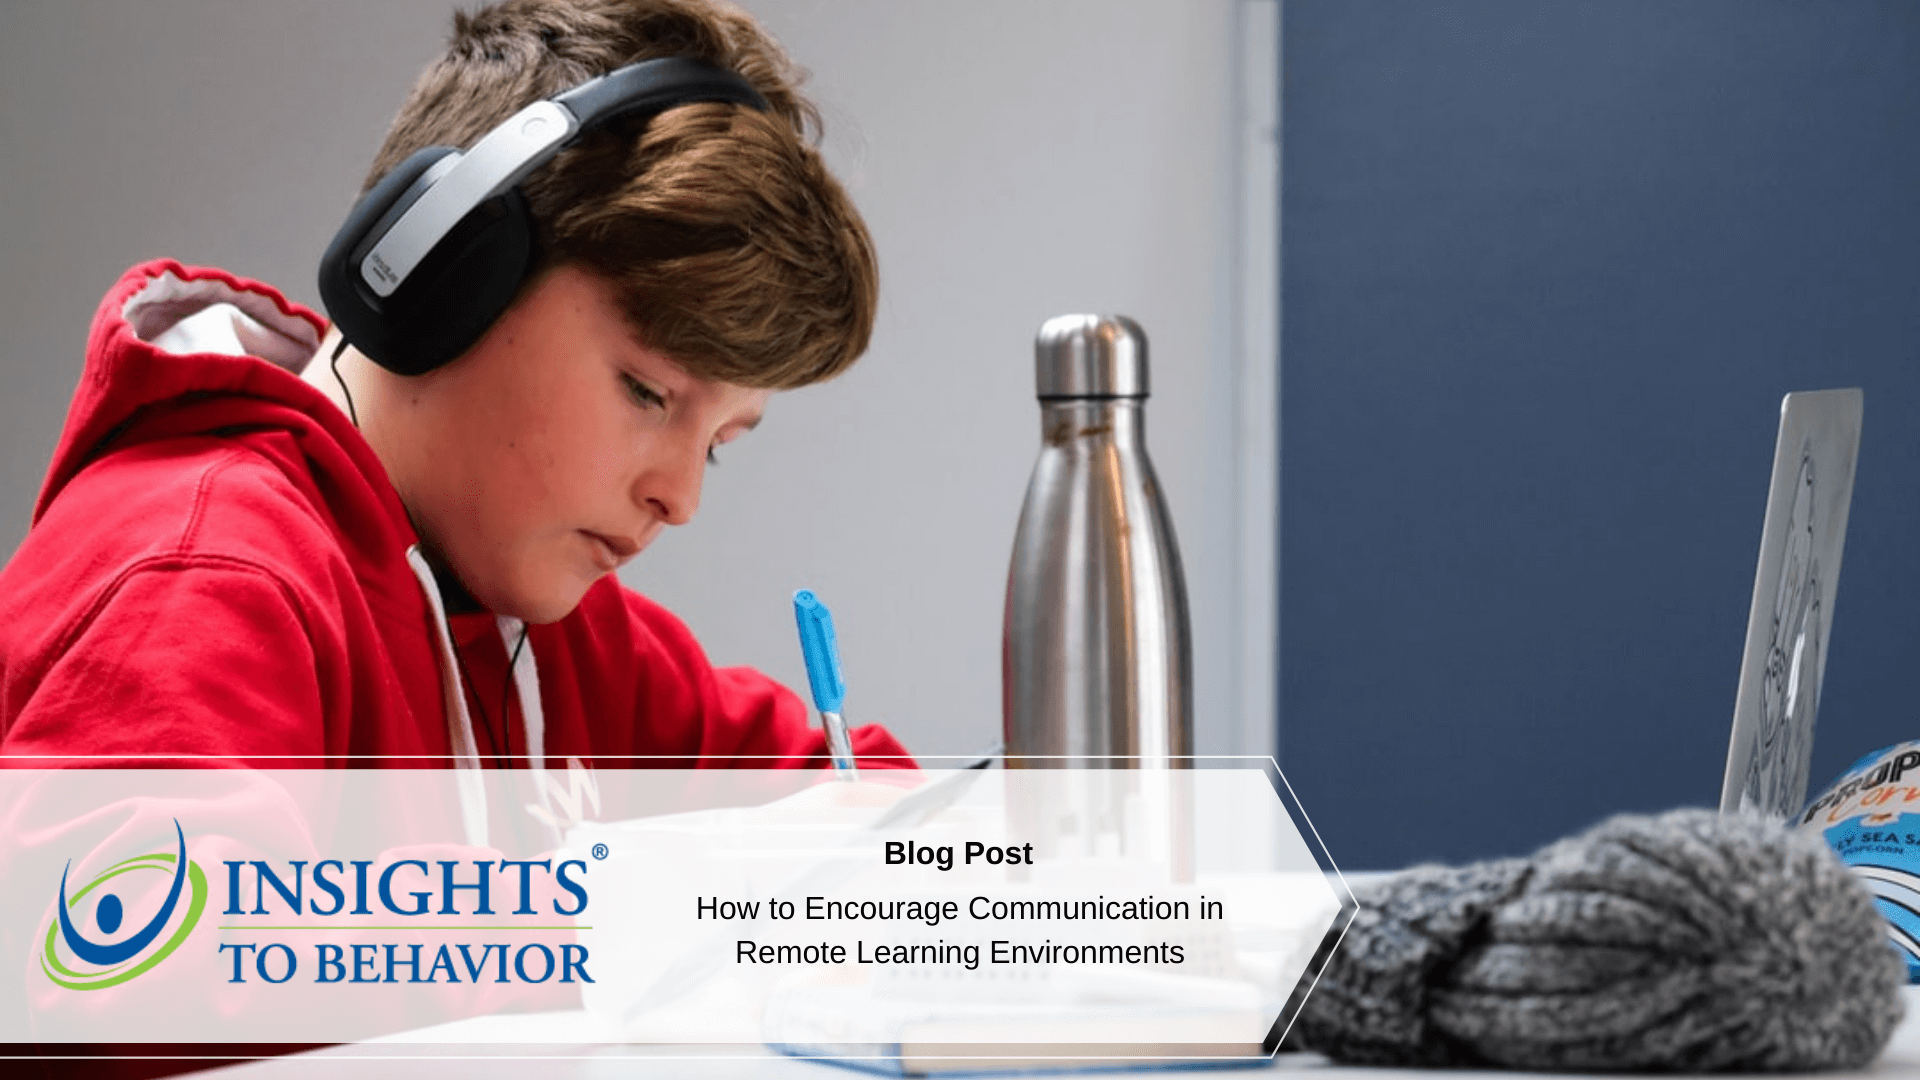 How to Encourage Communication in Remote Learning Environments